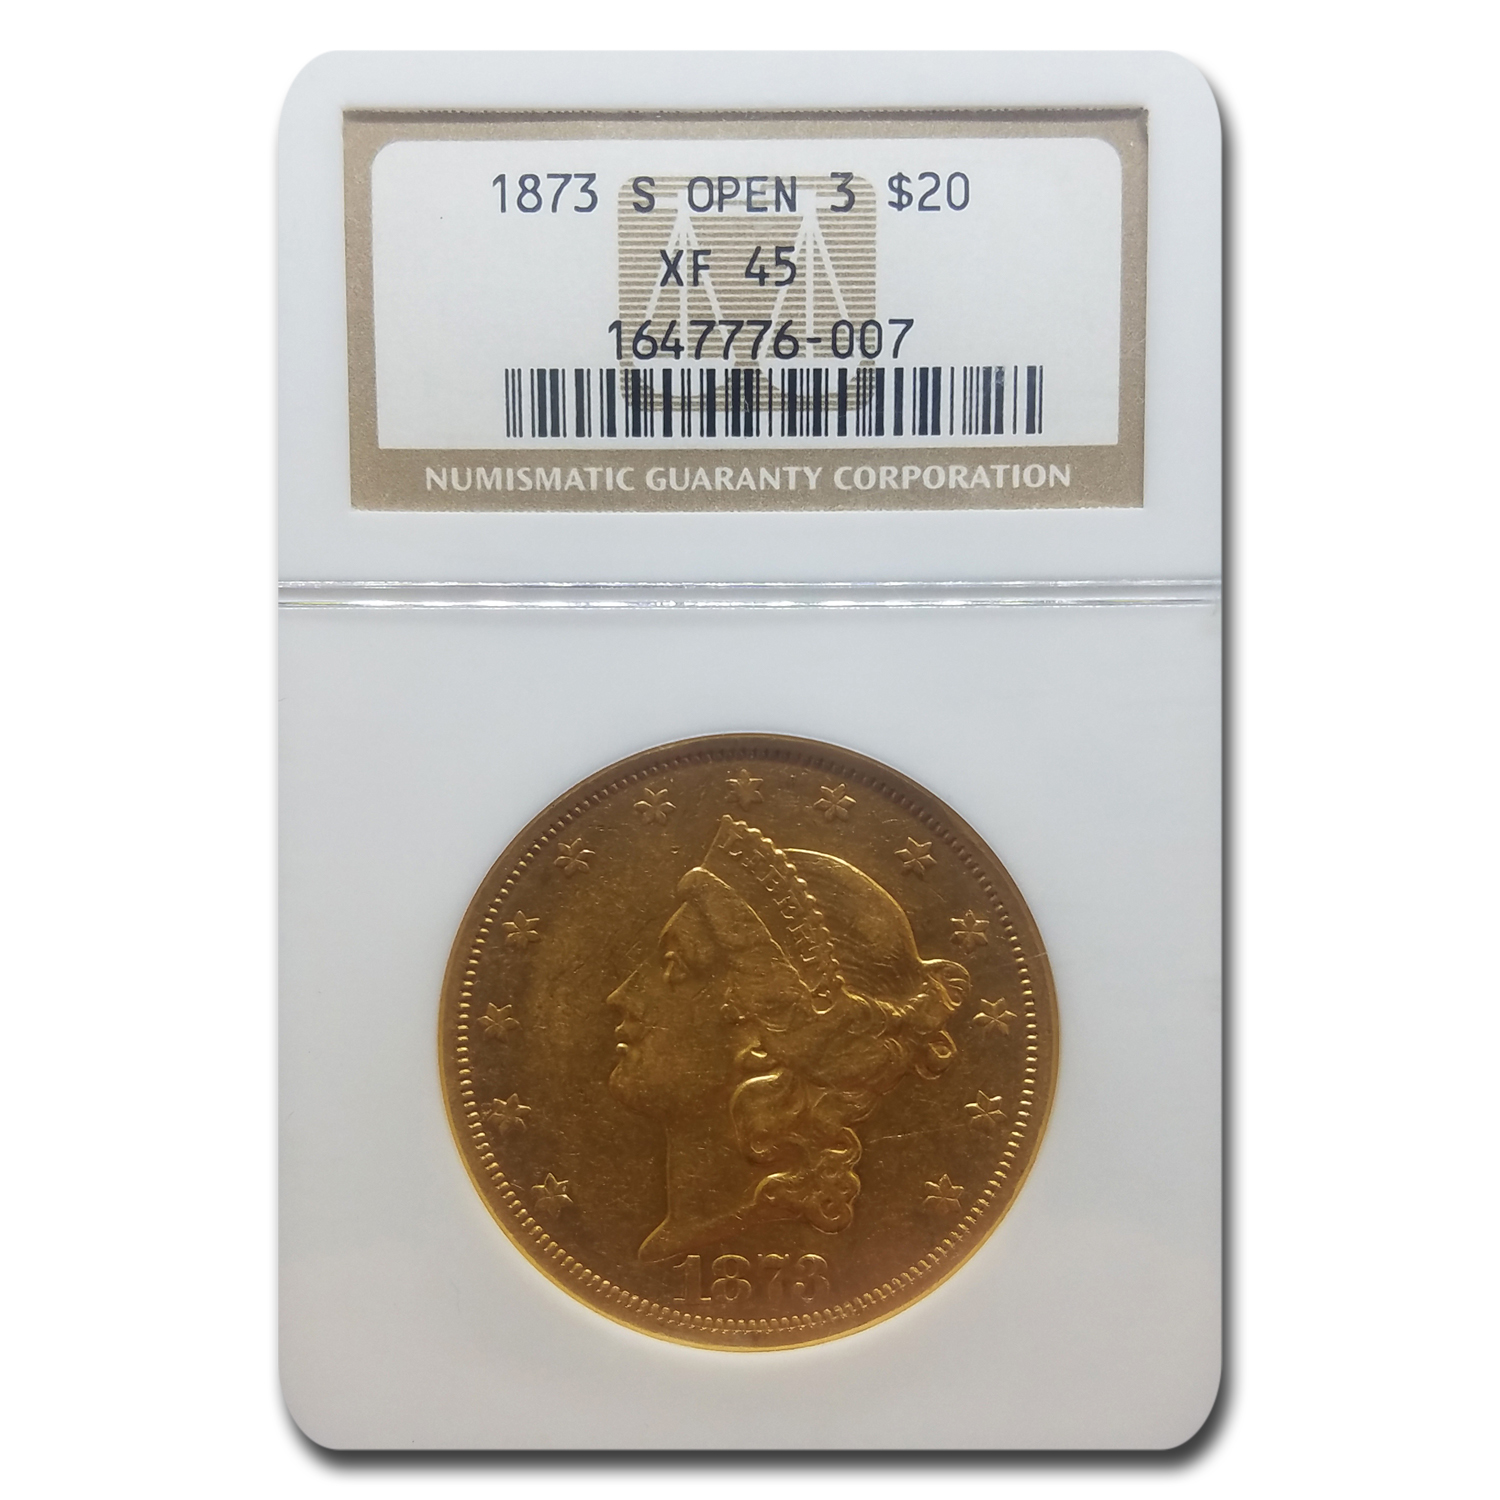 1873-S $20 Gold Liberty Double Eagle - (Open 3) - XF-45 NGC